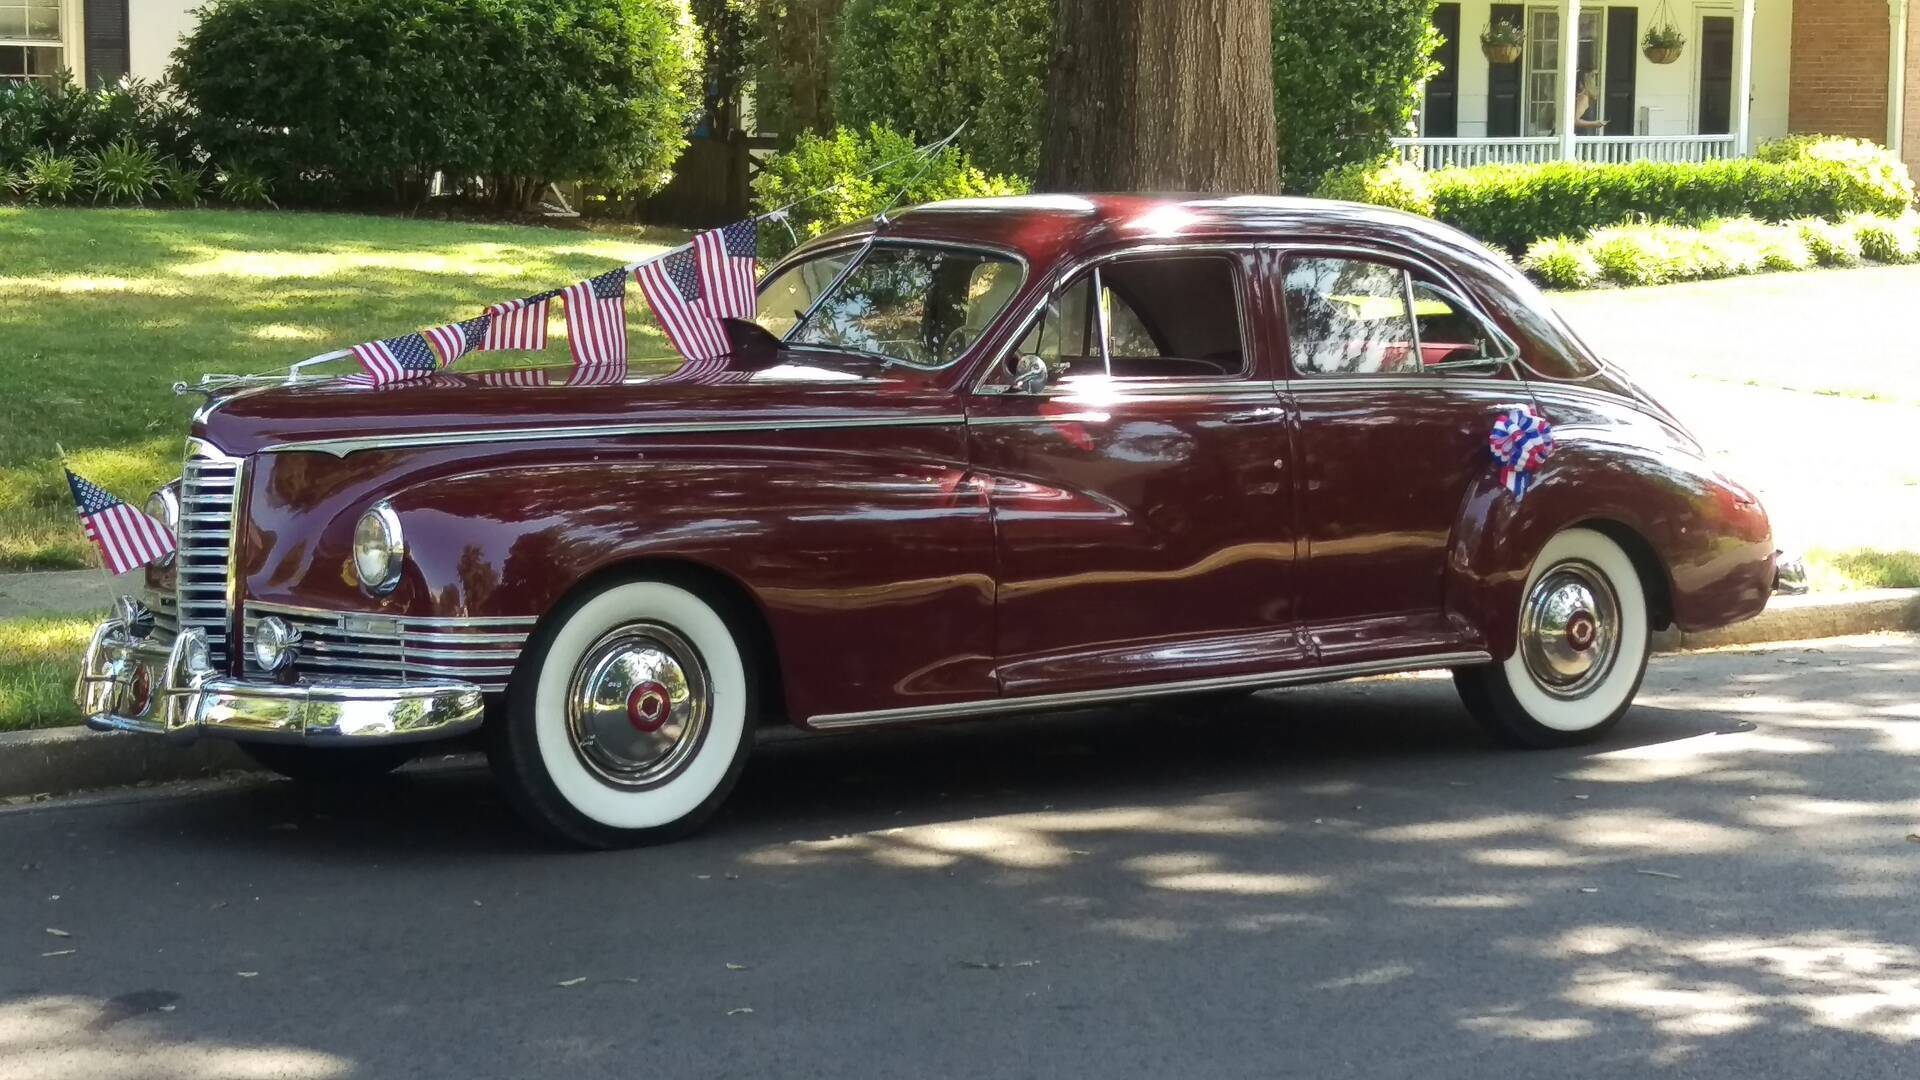 July 4th 2020 Parade Packard